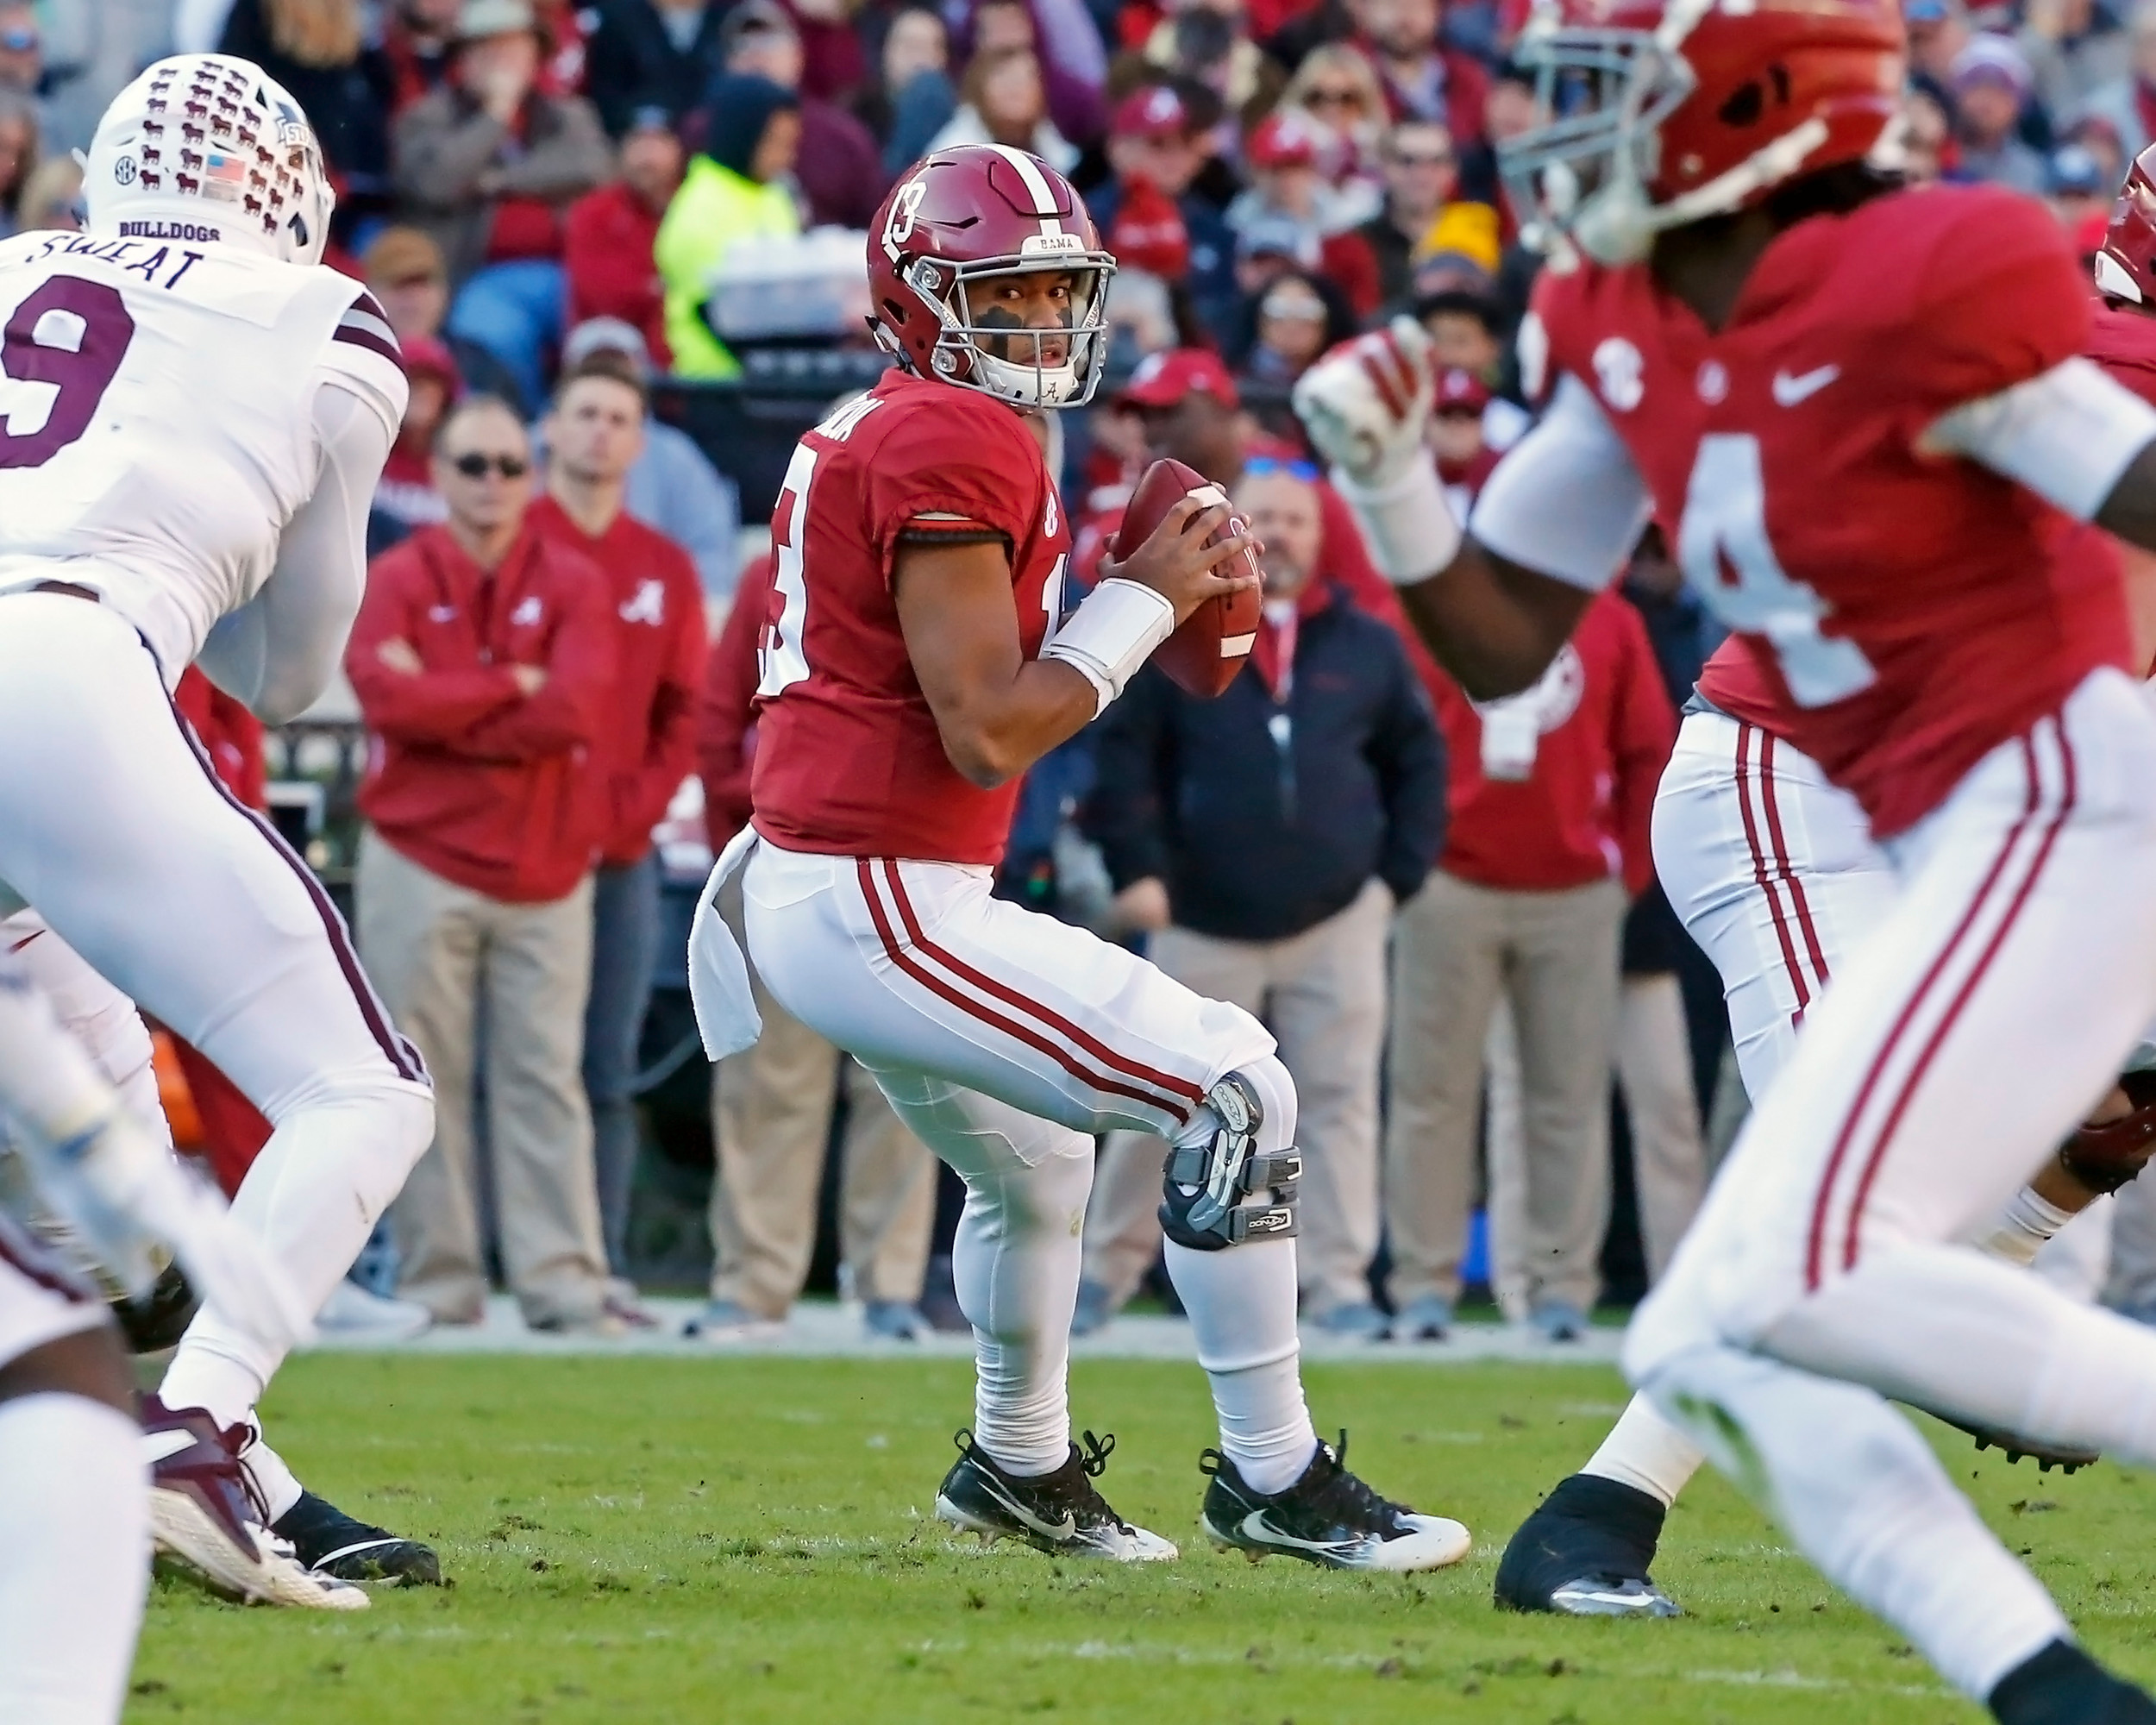 Alabama Crimson Tide quarterback Tua Tagovailoa (13) looks for a receiver during the game between Mississippi State and the University of Alabama at Bryant-Denny Stadium in Tuscaloosa, Al. Credit: Jason Clark / Daily Mountain Eagle